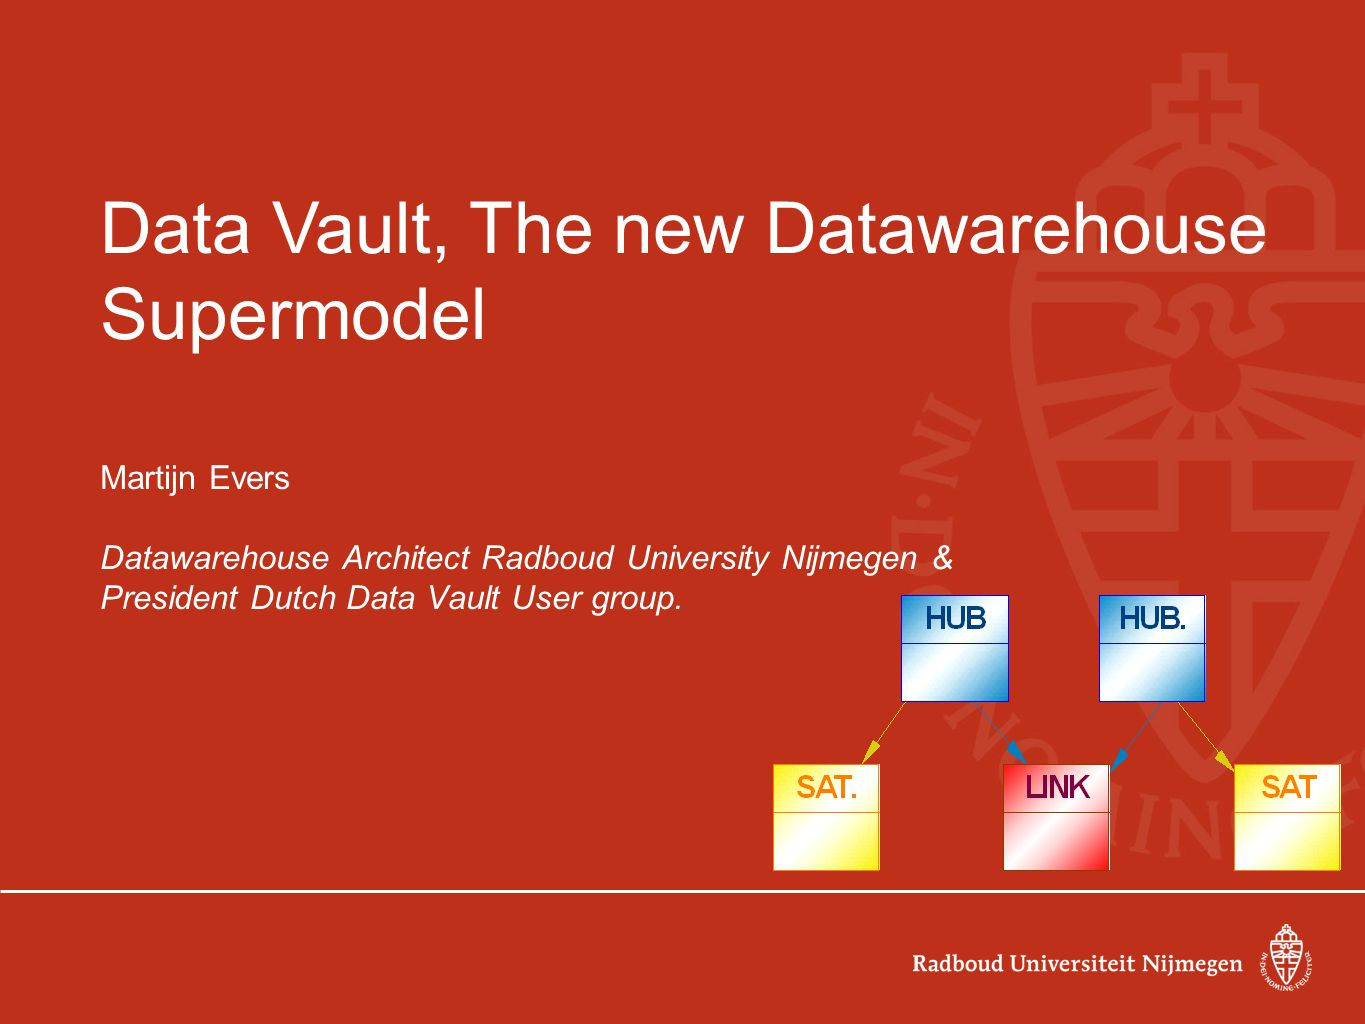 Data Vault, The new Datawarehouse Supermodel